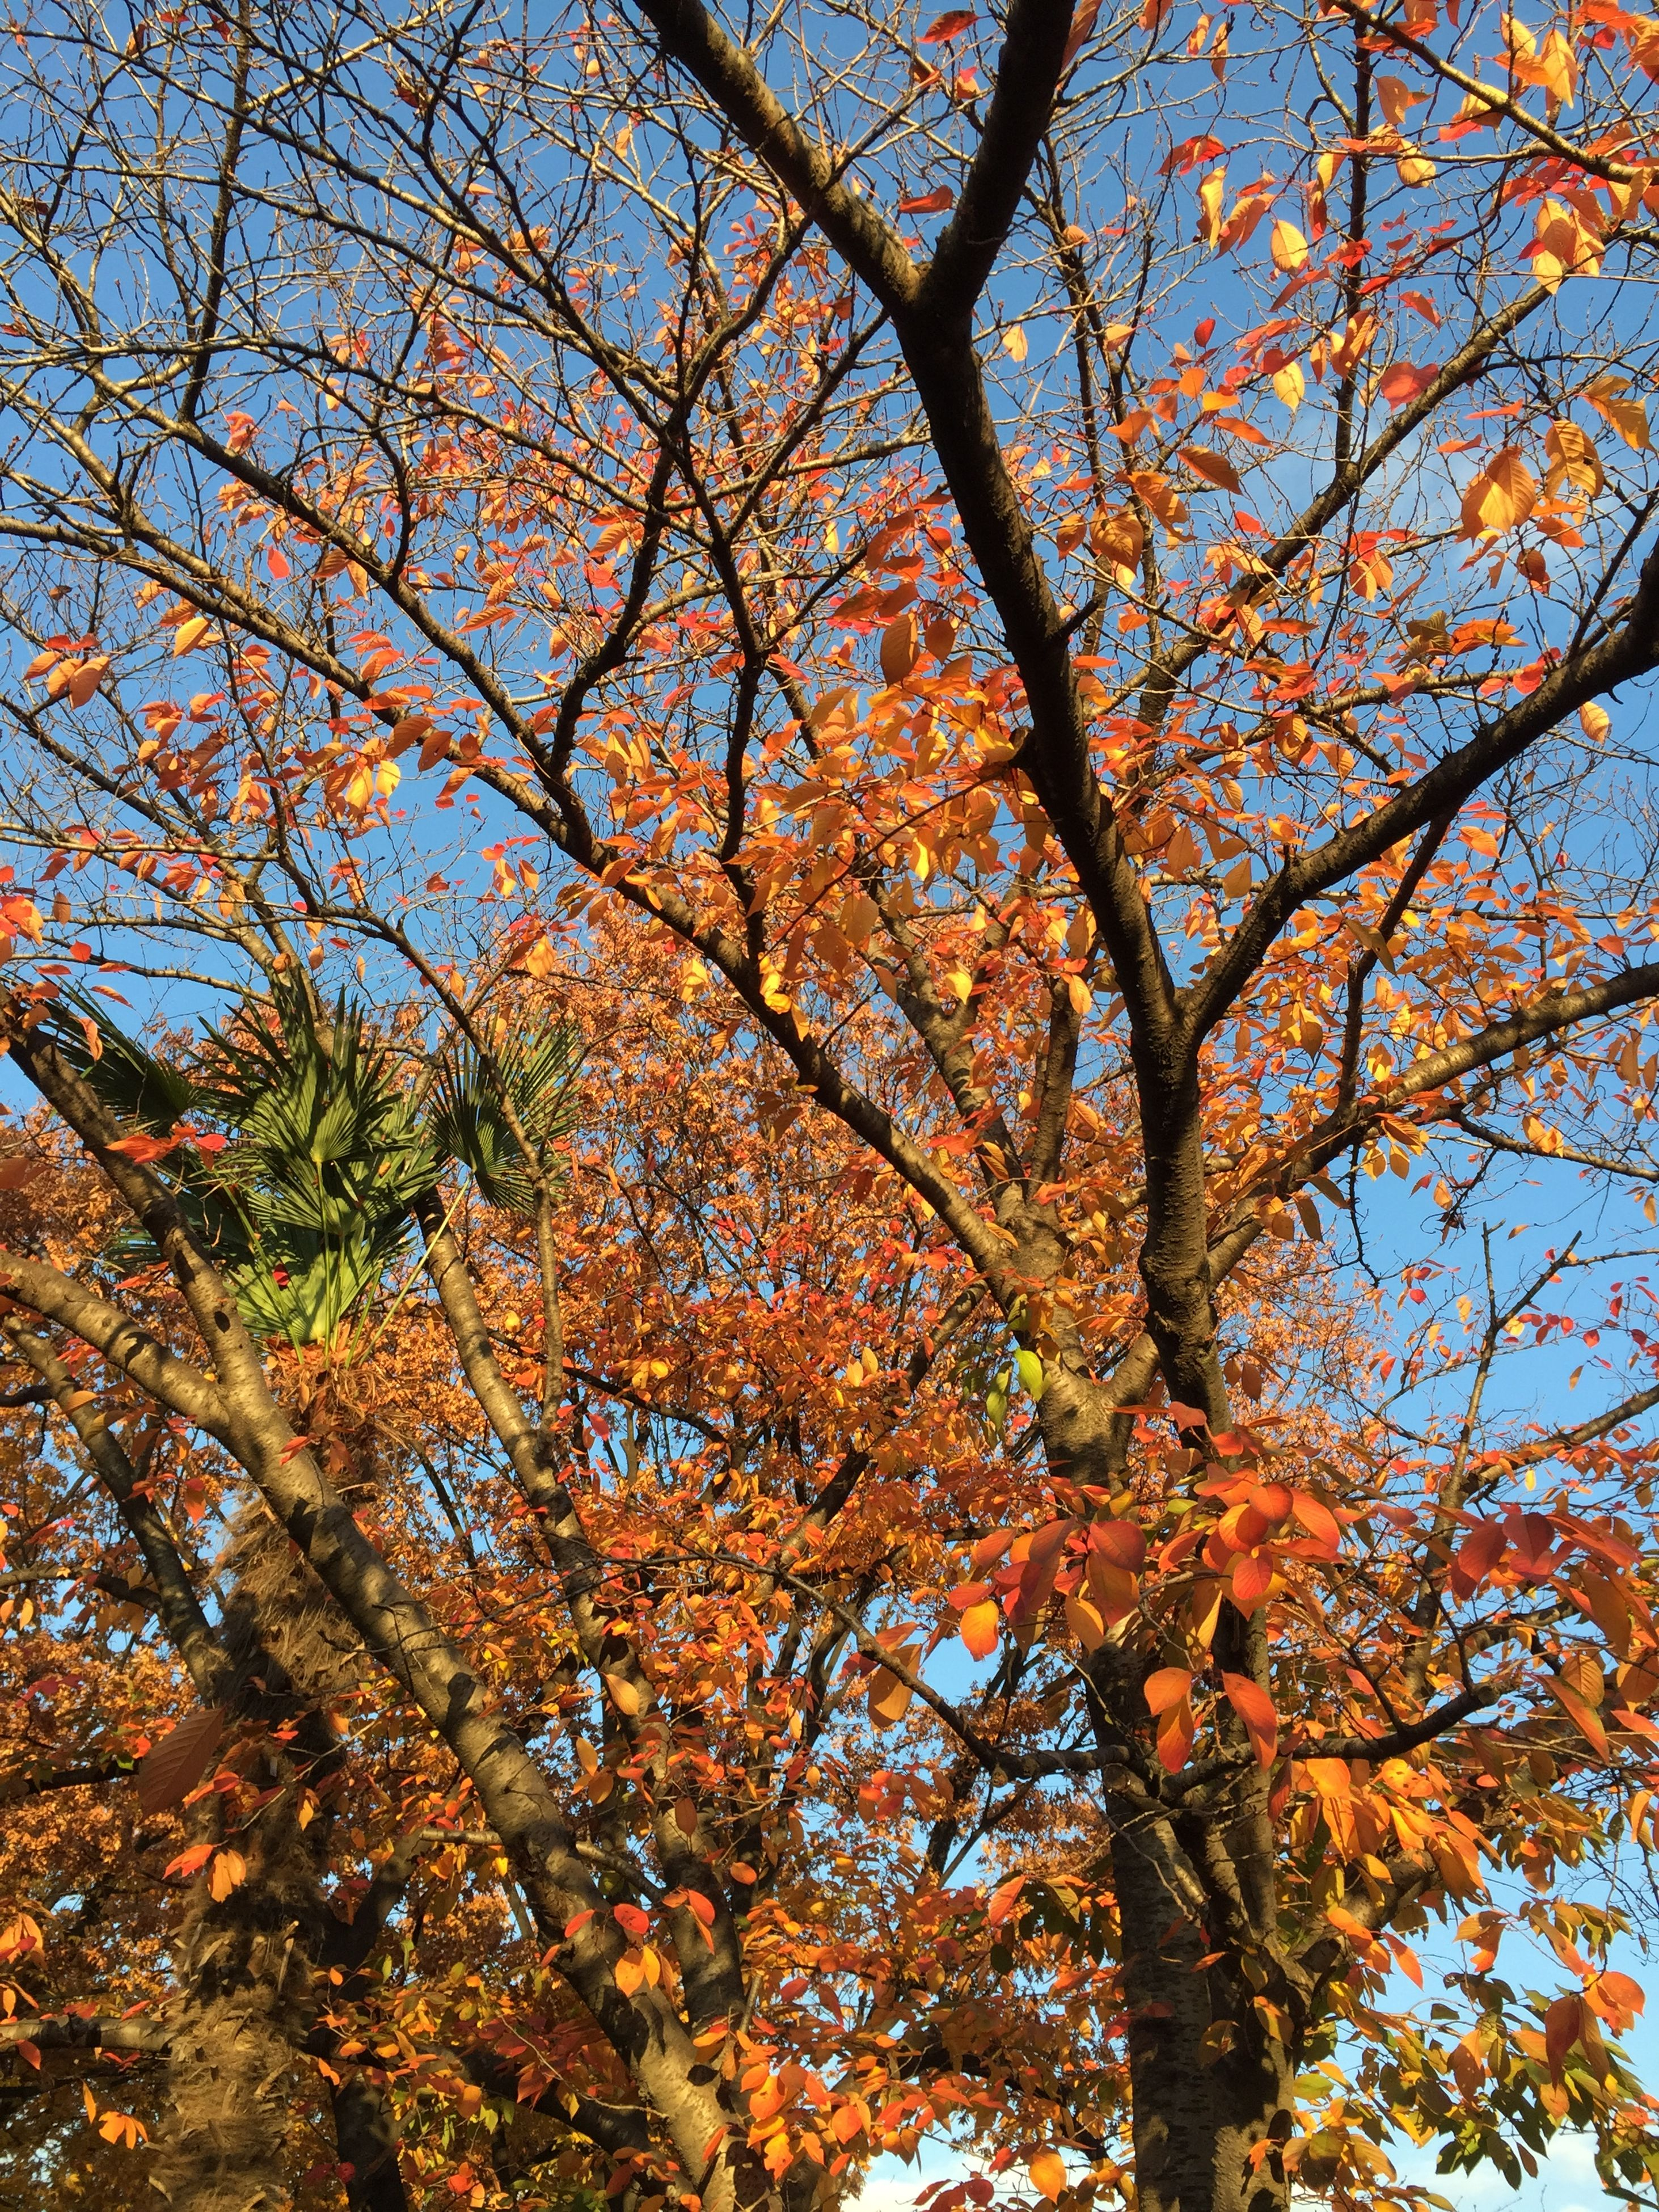 tree, low angle view, branch, growth, autumn, beauty in nature, nature, change, season, sky, flower, tranquility, day, clear sky, freshness, outdoors, no people, leaf, blossom, yellow